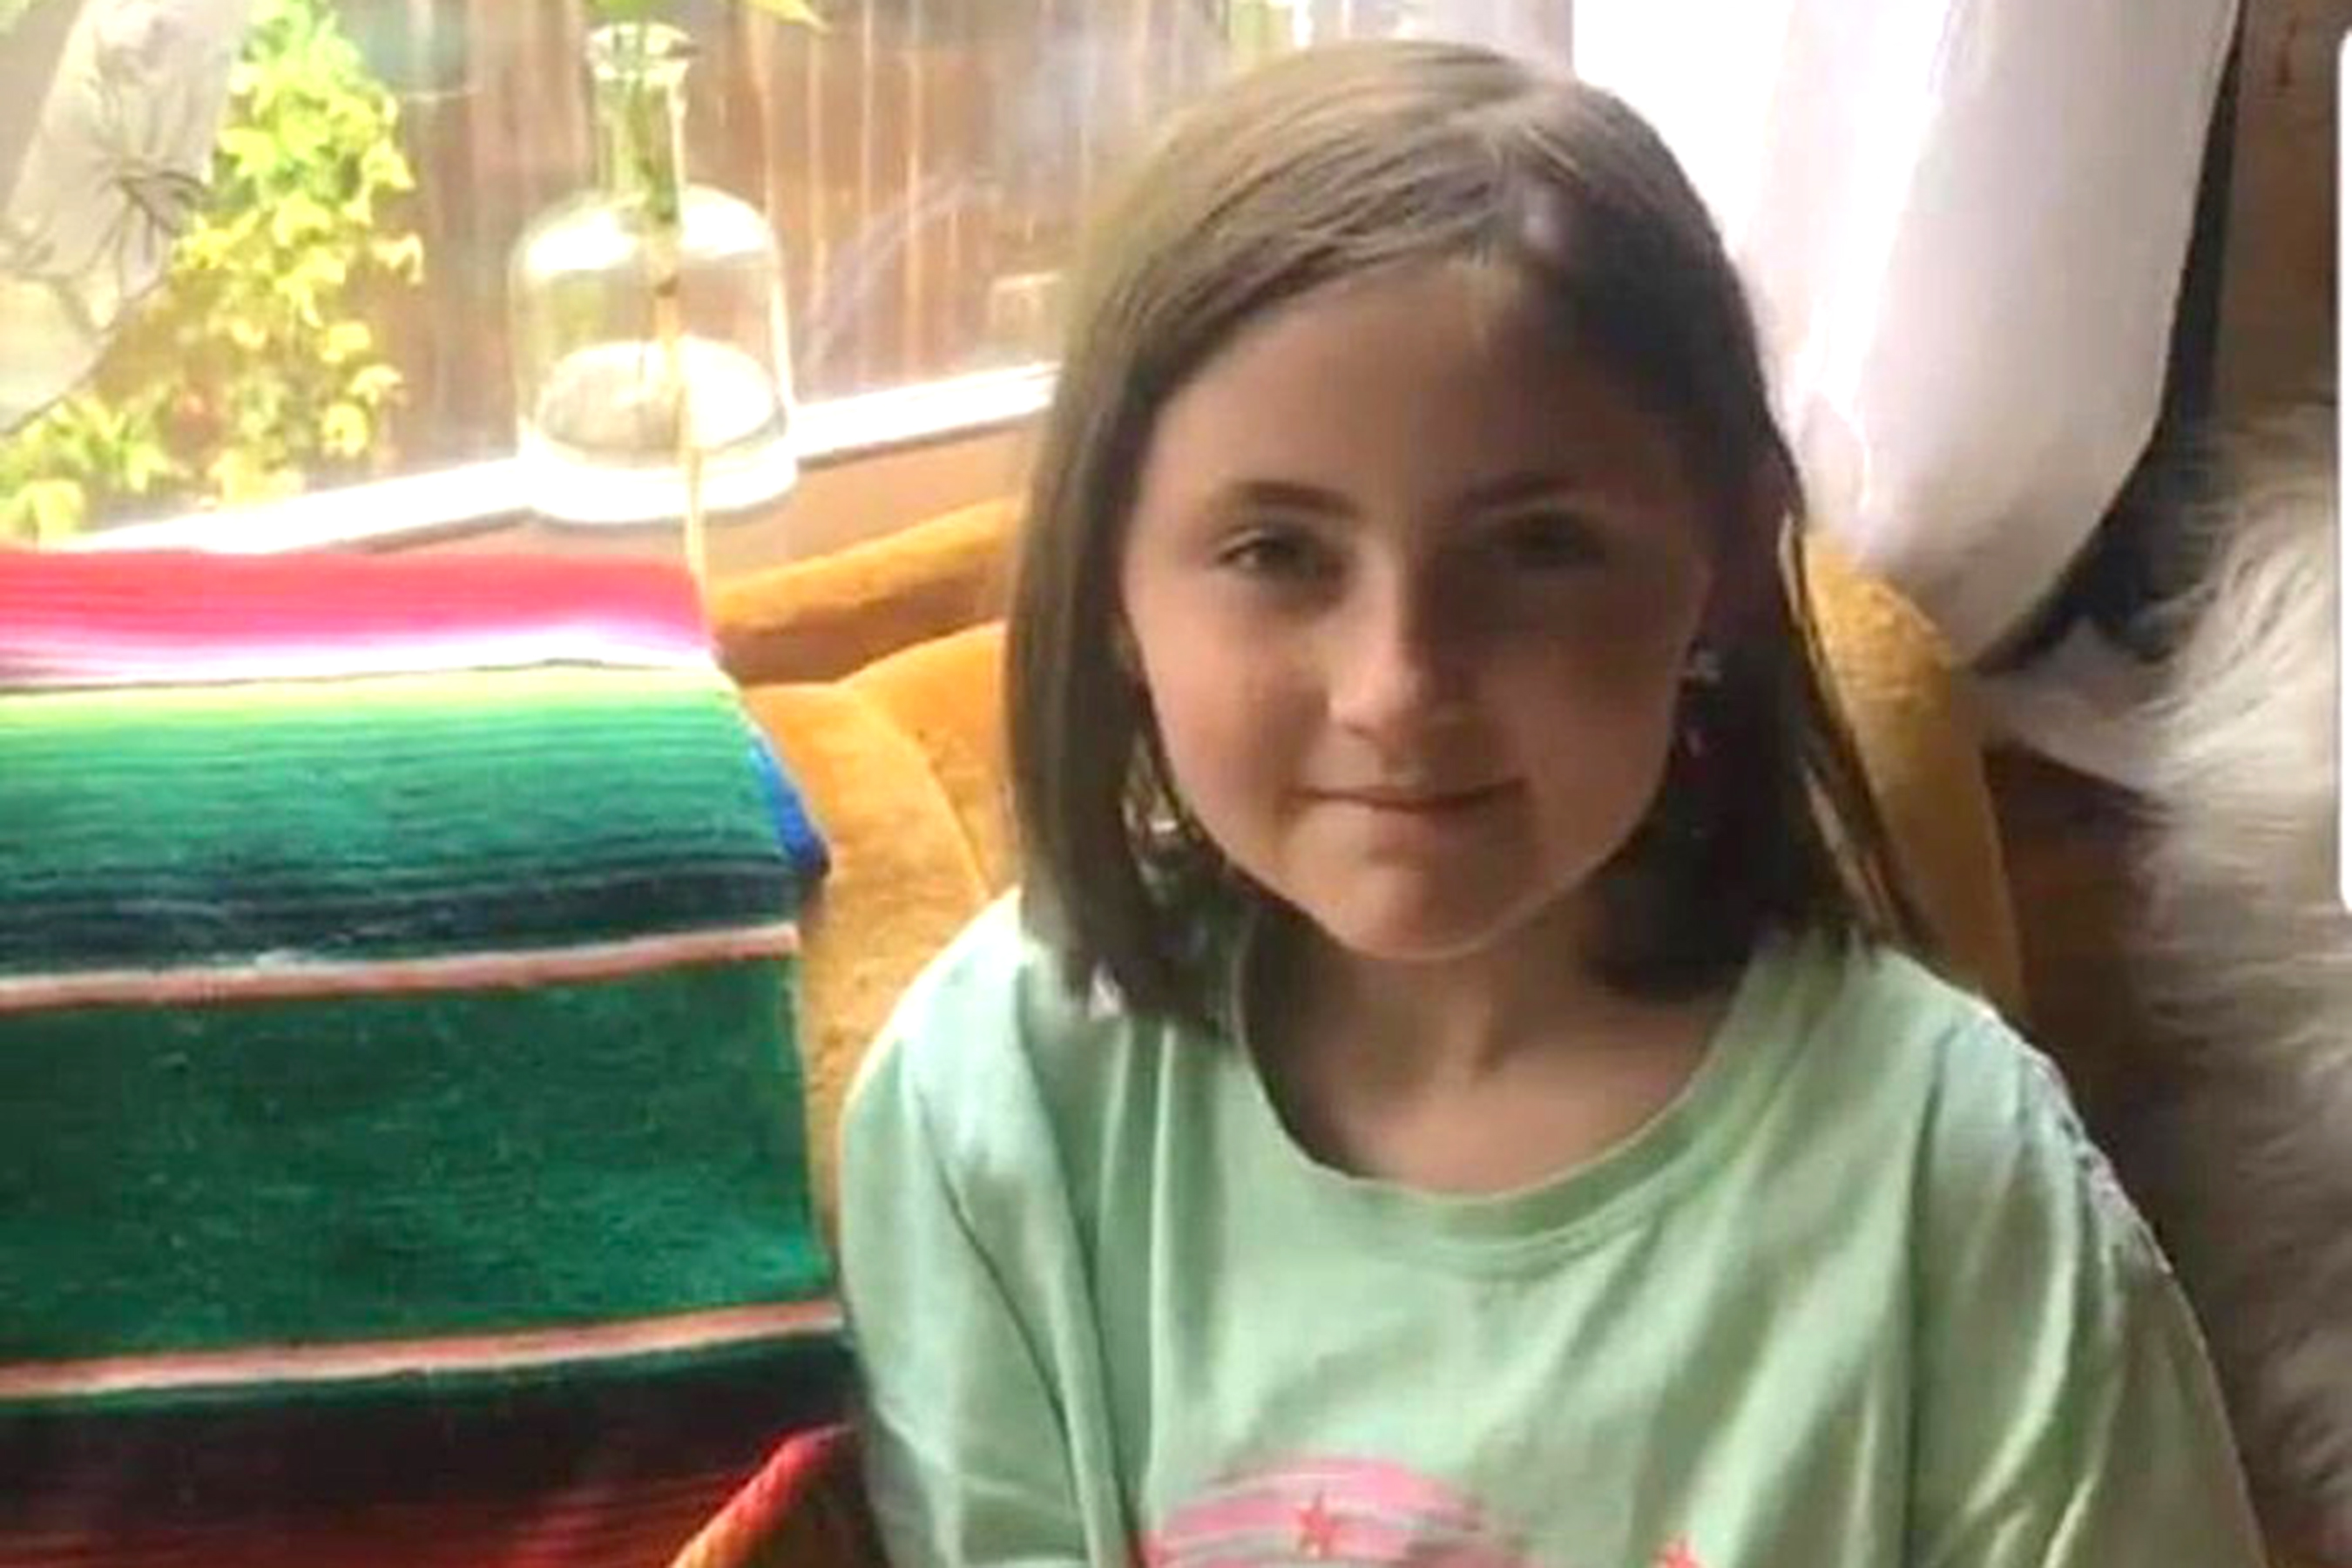 Texas Girl, 8, Found Safe After 'Heroes' Lead Police to Alleged Kidnapper